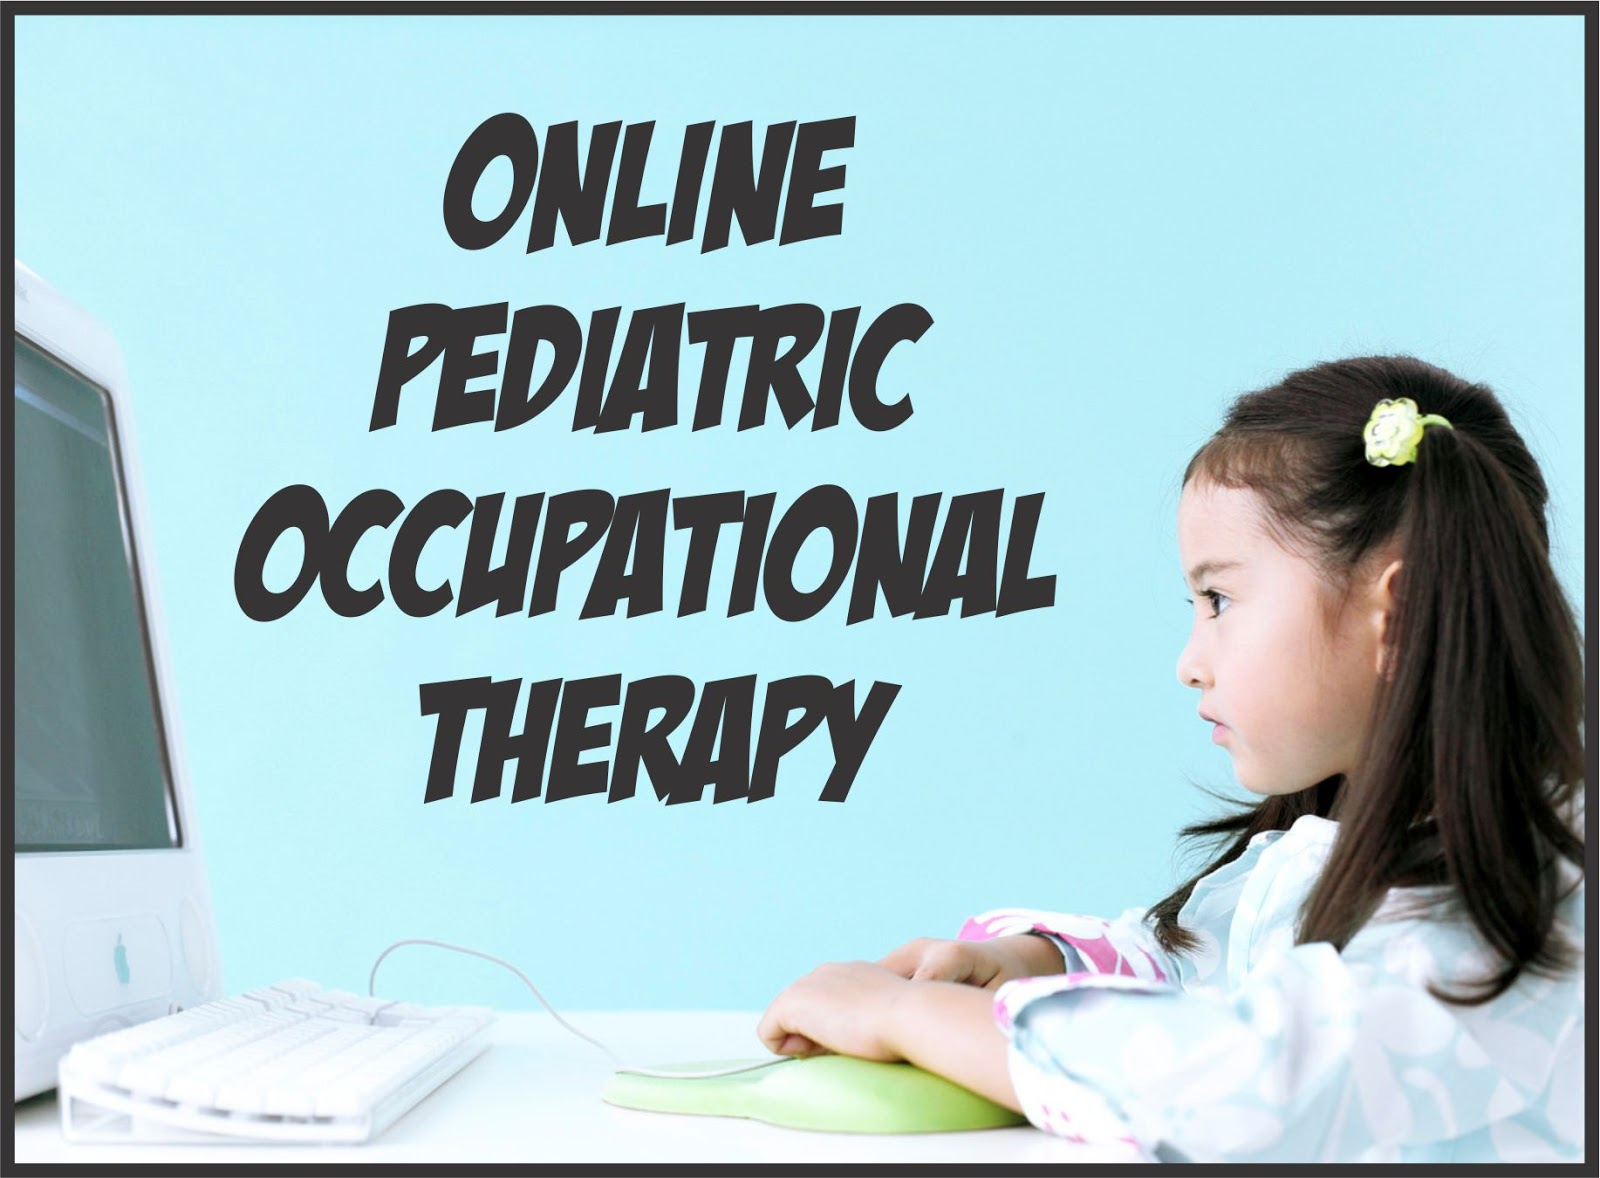 Online Pediatric Occupational Therapy Your Therapy Source